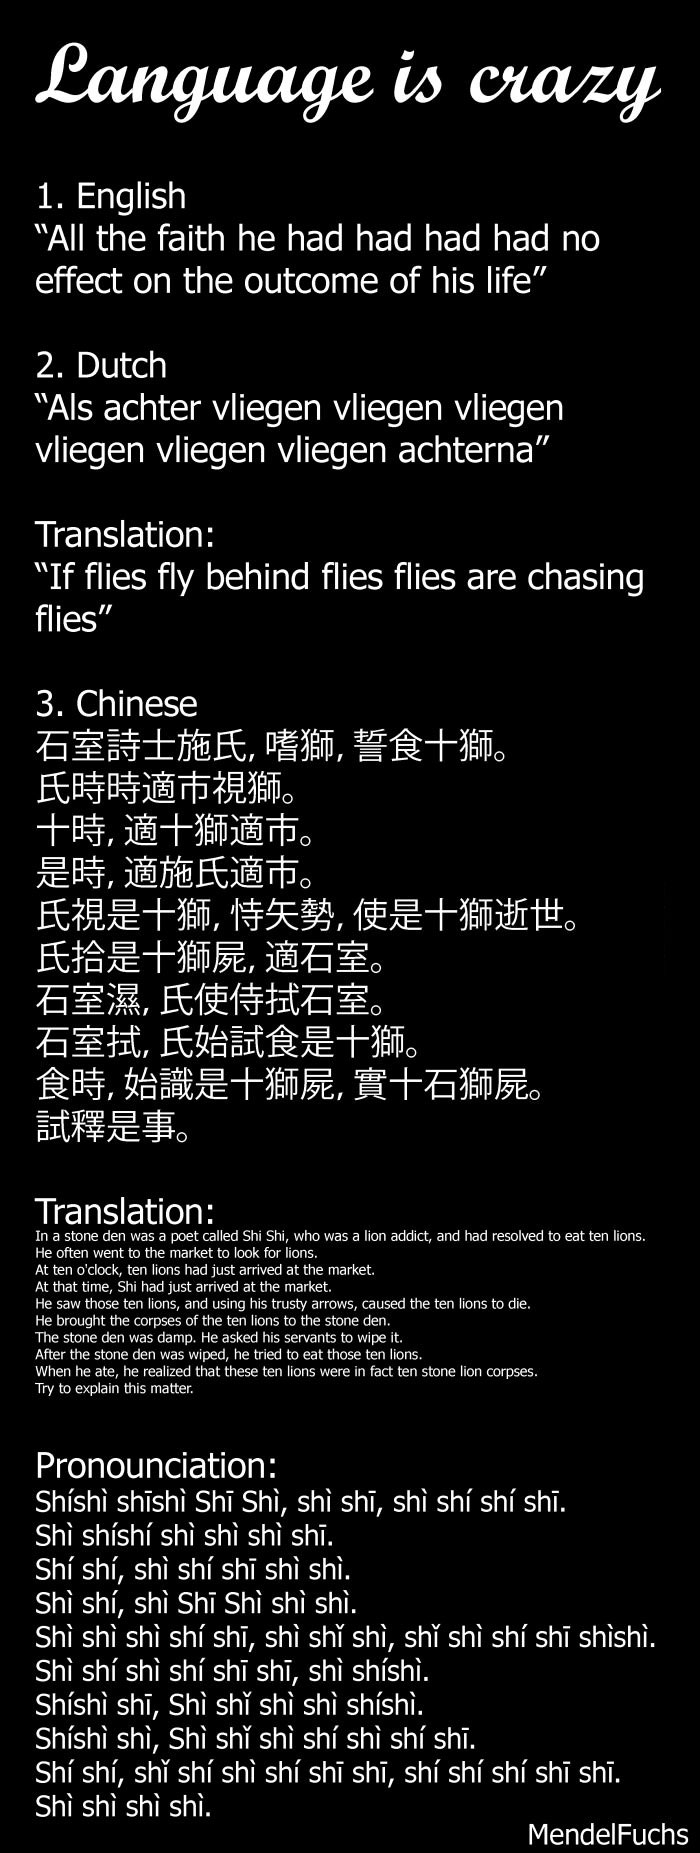 language is crazy, three examples of weird sentences in english, dutch and chinese